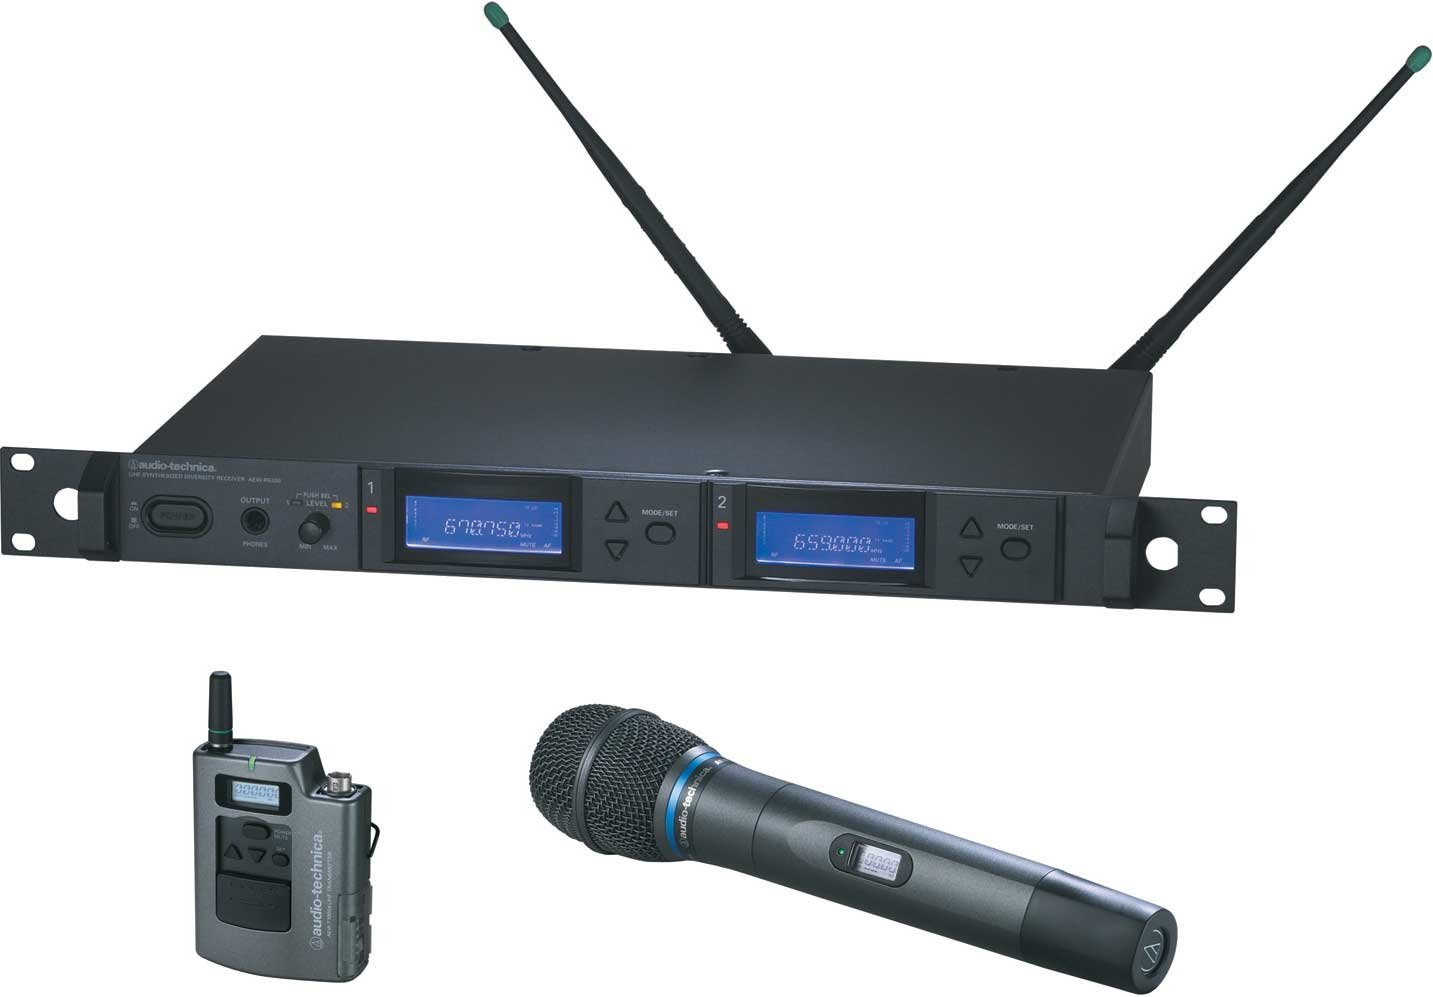 audio technica aew 5313ac dual wireless microphone system with bodypack transmitter aew t3300a. Black Bedroom Furniture Sets. Home Design Ideas